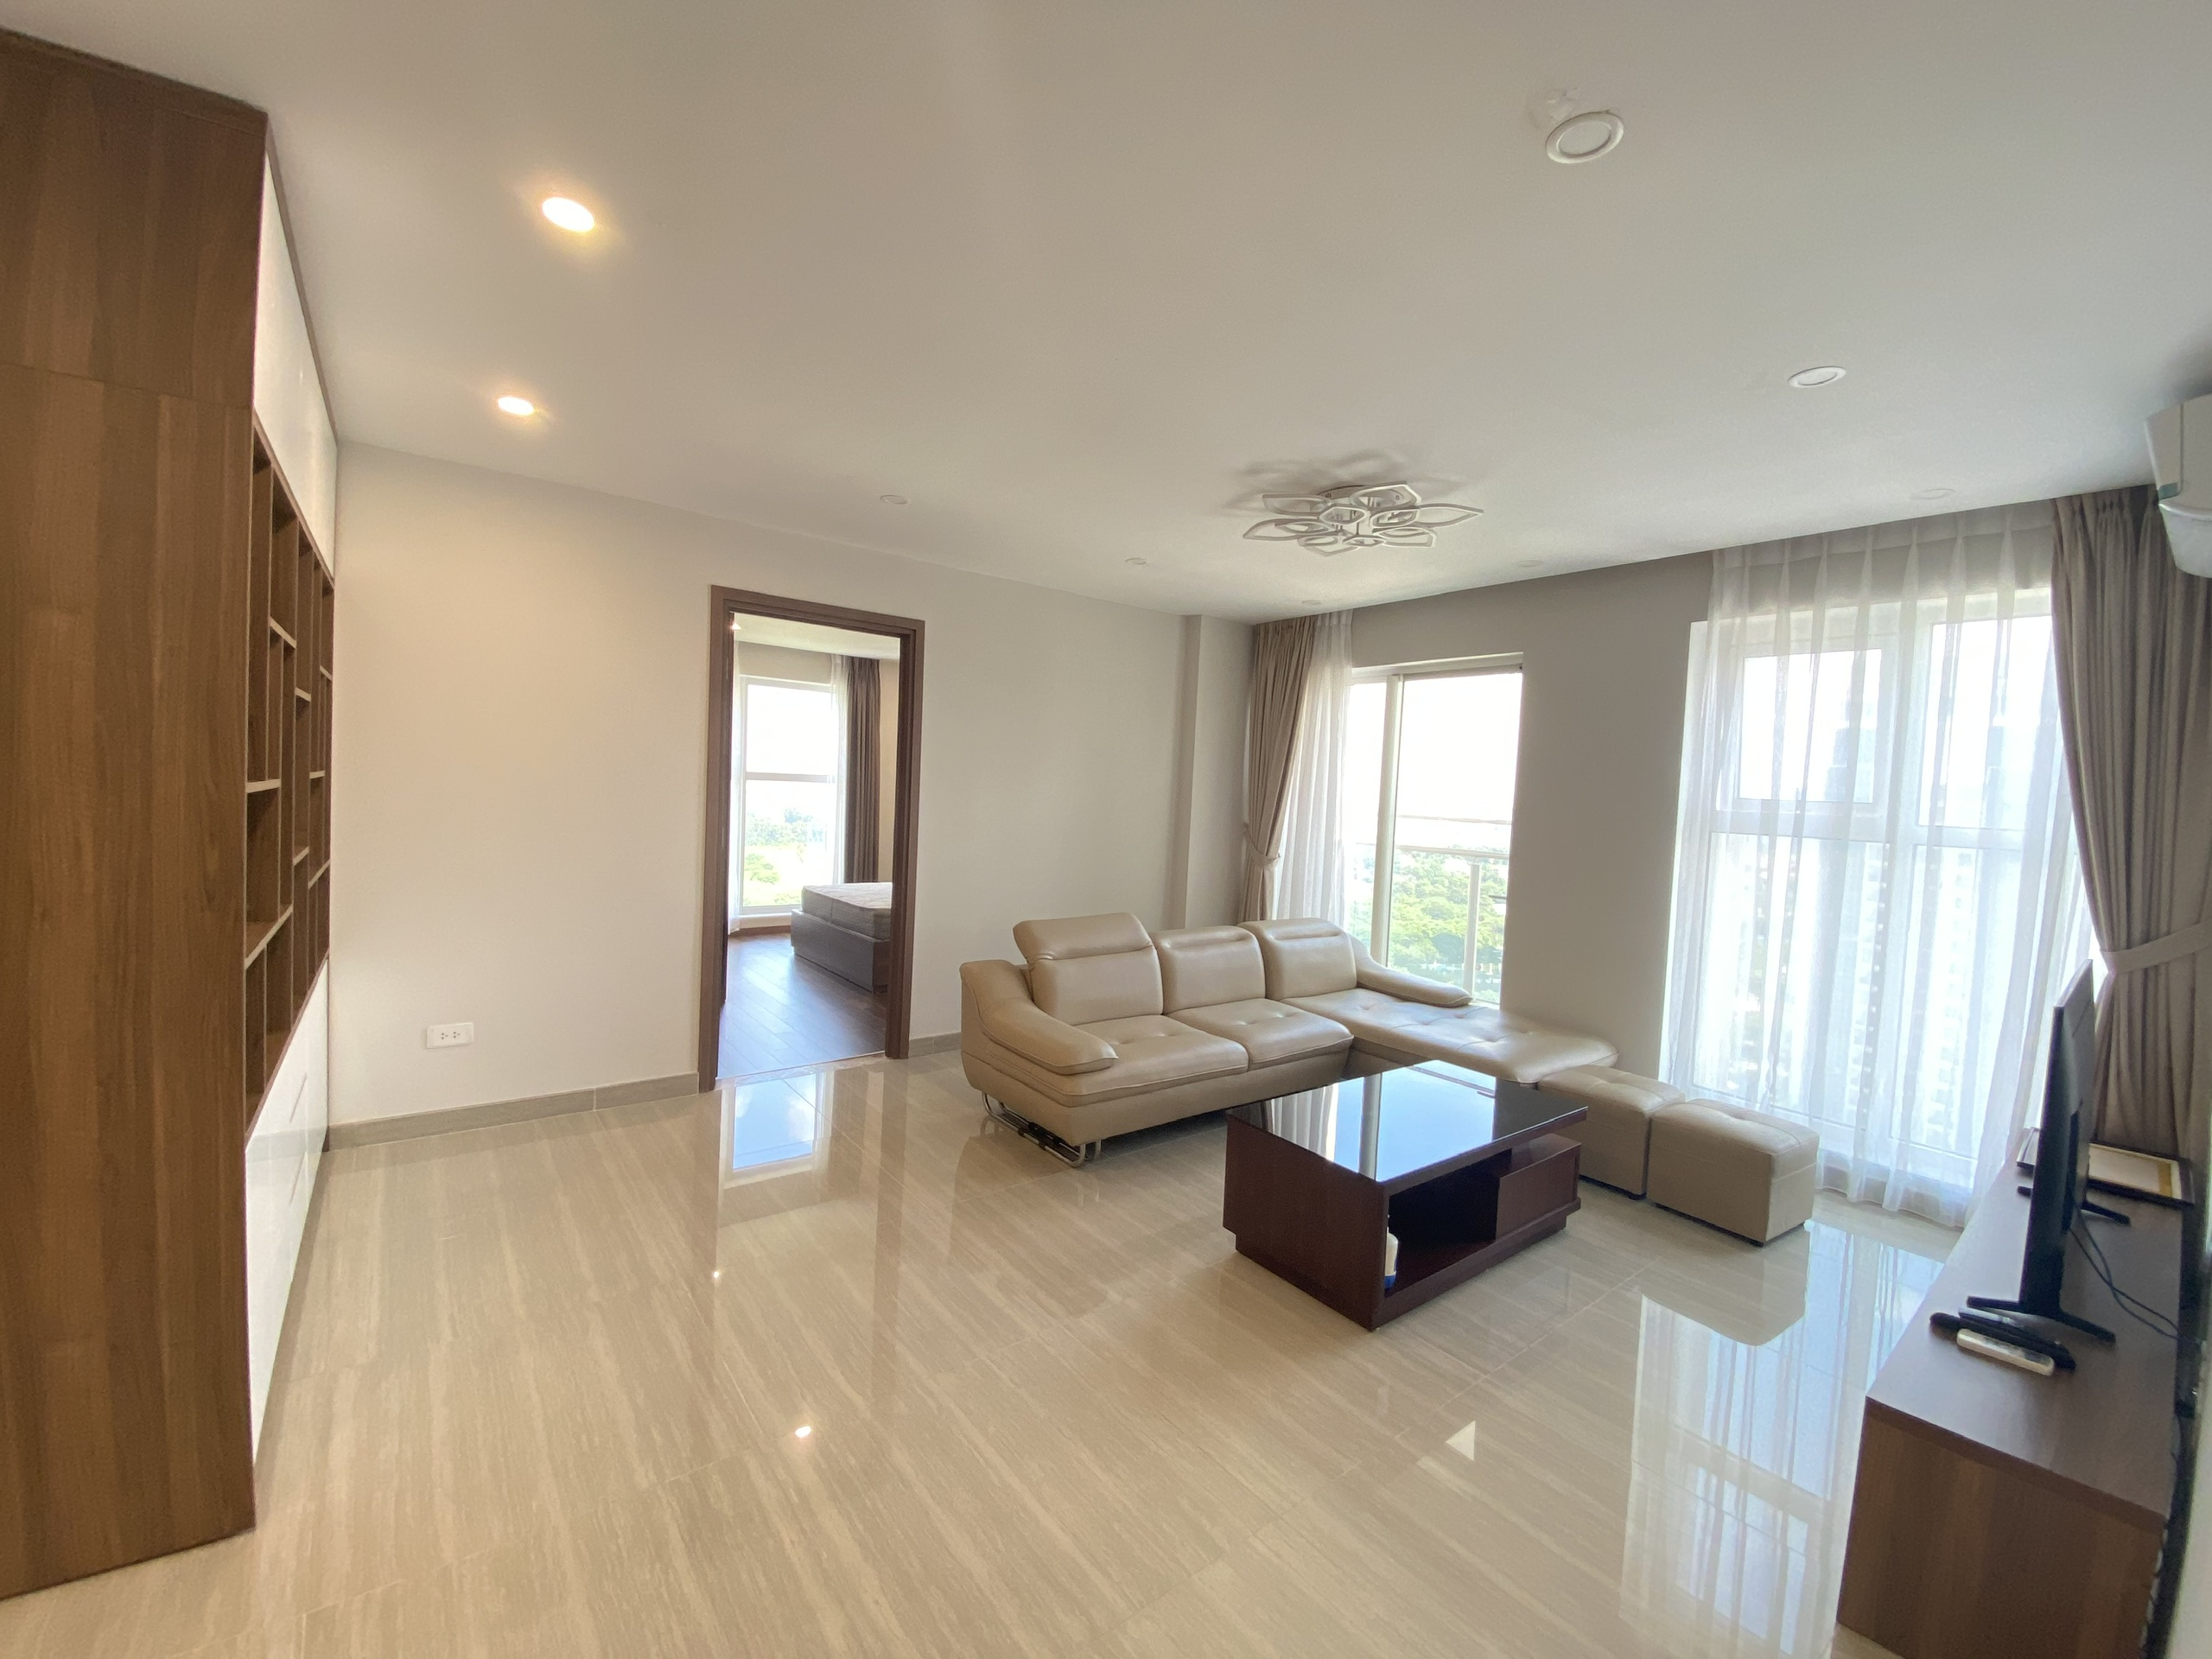 Nice apartment for rent at L3 building in Ciputra, area of 154 sqm, design 3 bedrooms, golf course view. Good price.